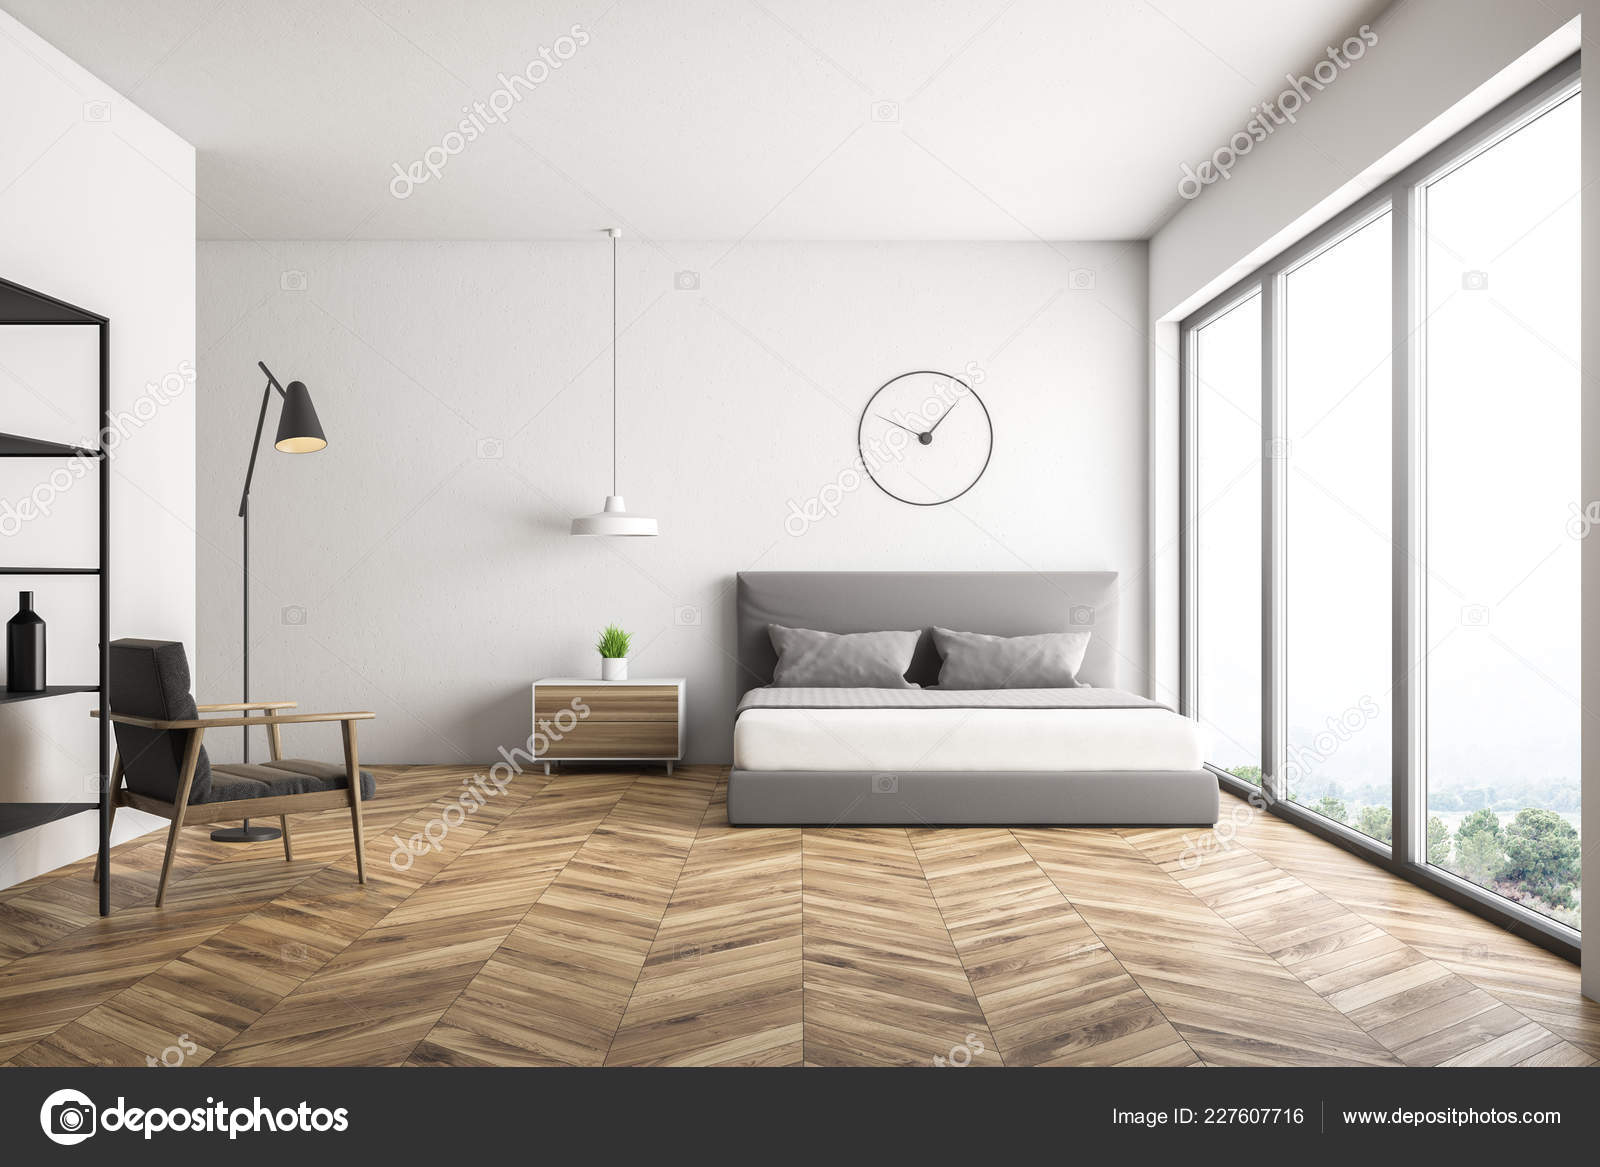 Master bedroom interior with white walls, wooden floor, bed with gray  covers, clock hanging above it, wooden bedside table and gray armchair. 8d